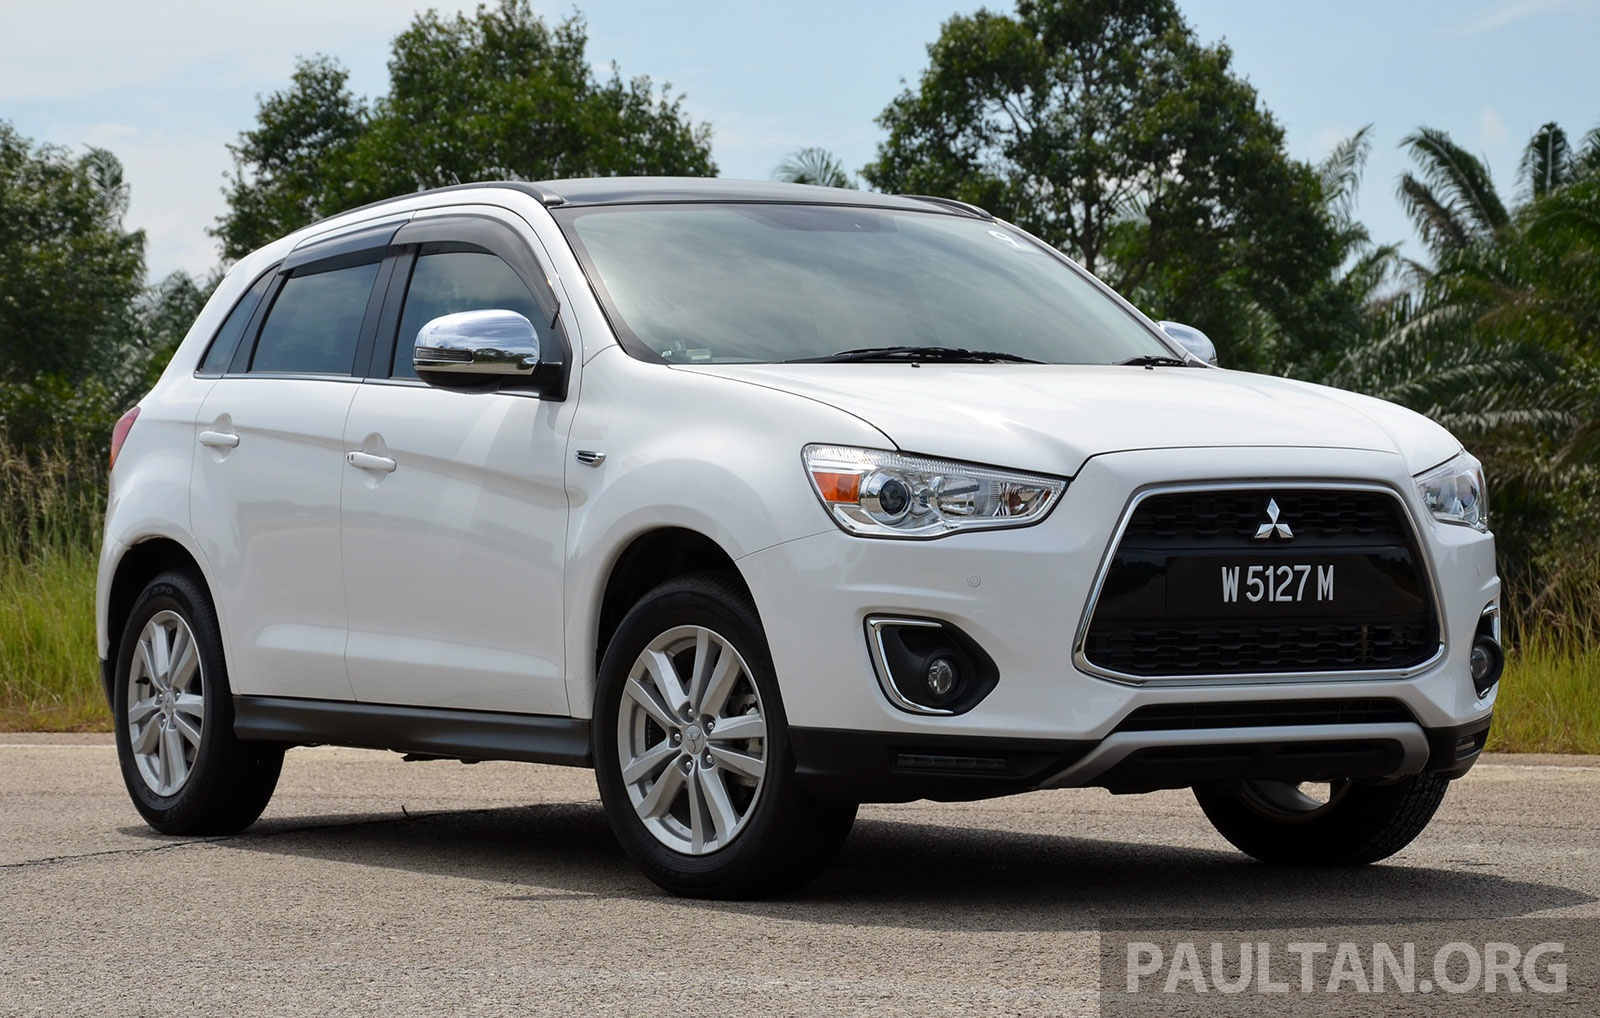 Gst Mitsubishi Updates Prices Down Rm200 To Rm2k